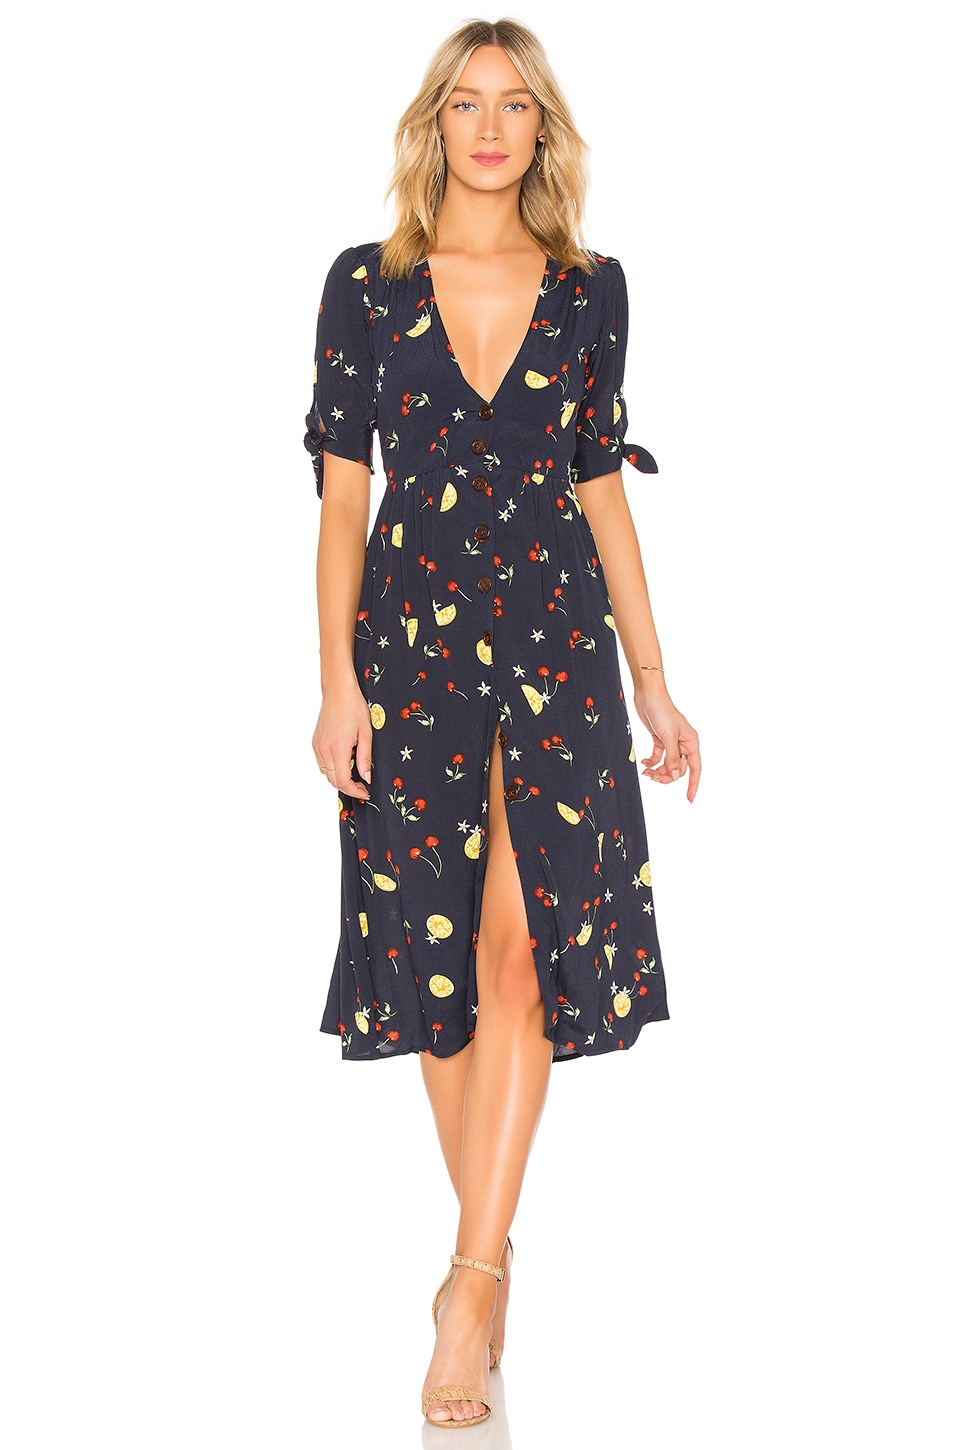 Capulet Adele Midi Dress in Fruit Print